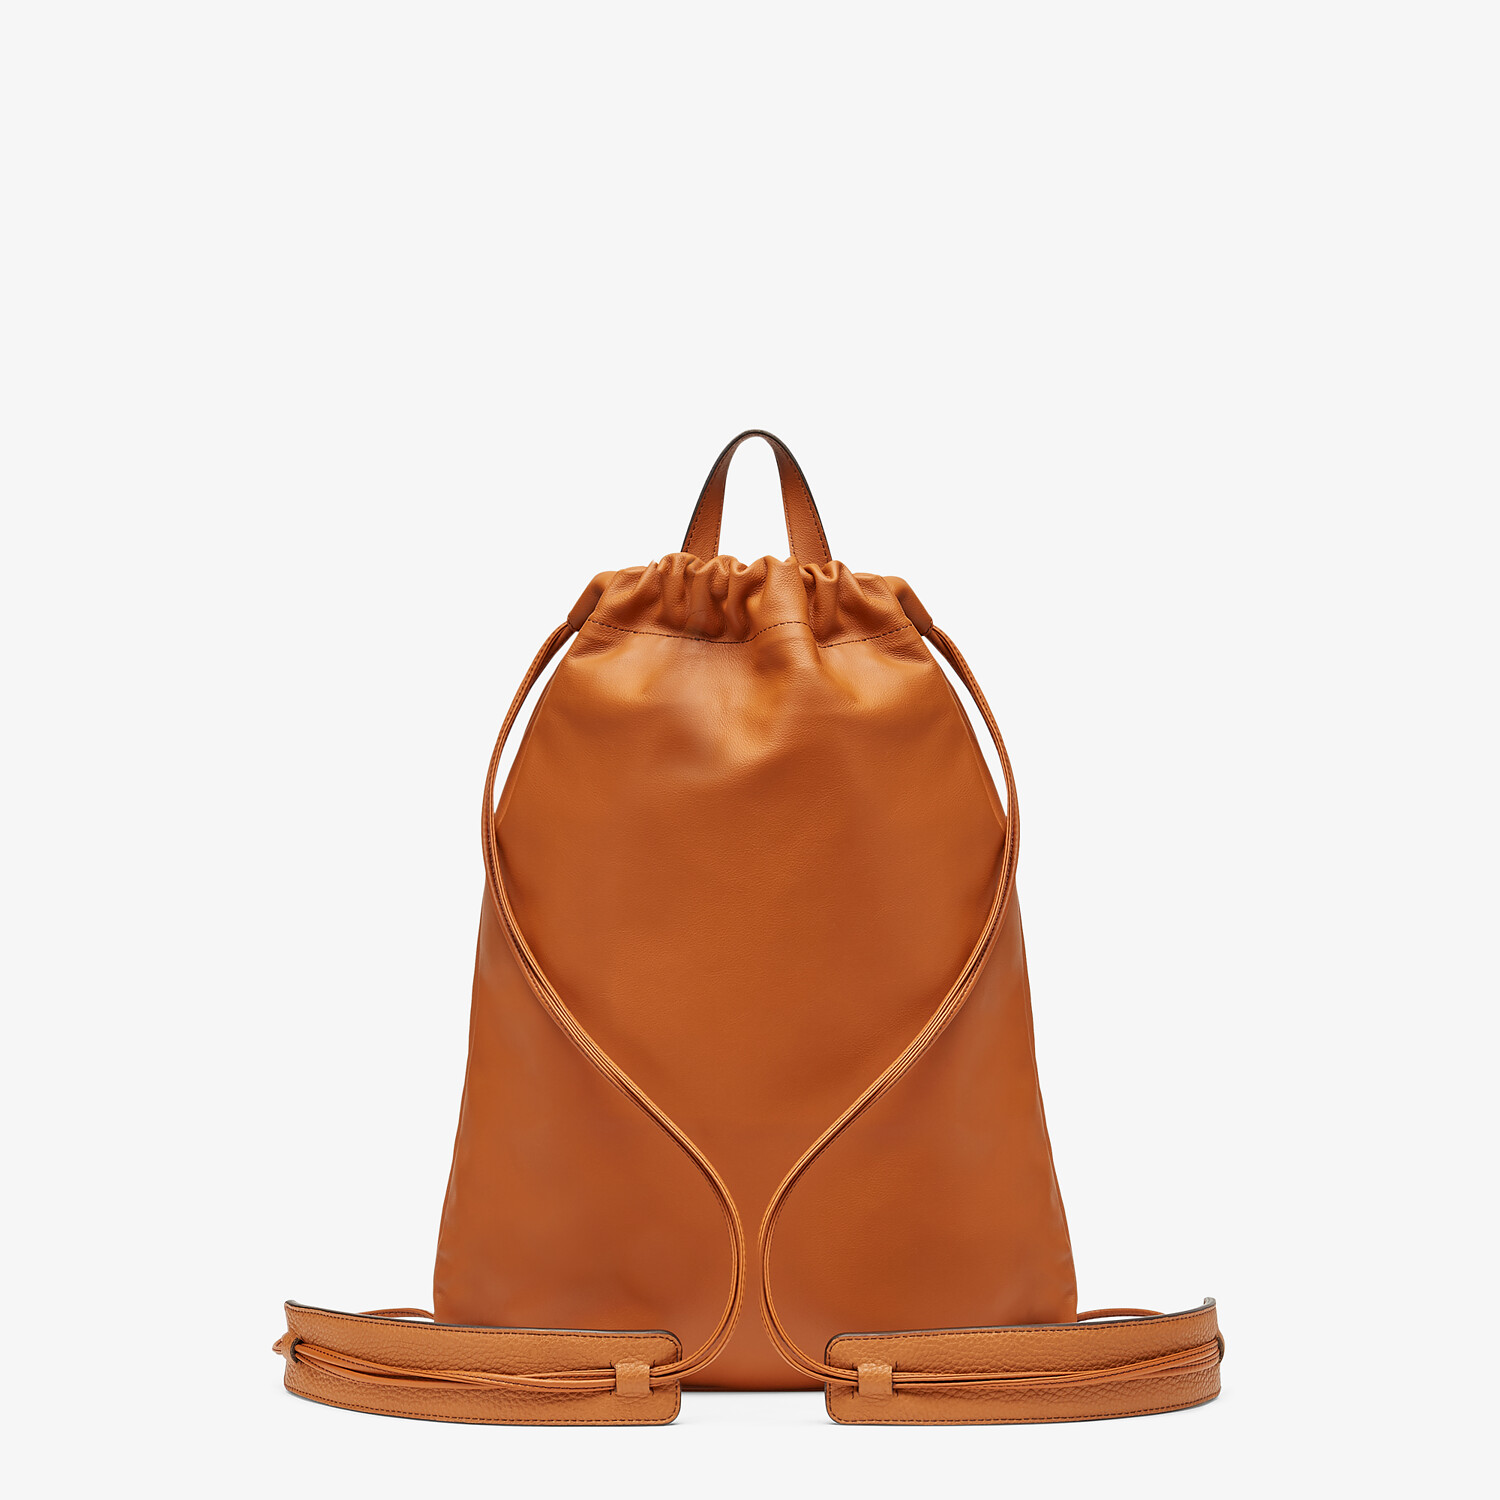 FENDI BACKPACK - Brown leather backpack - view 3 detail